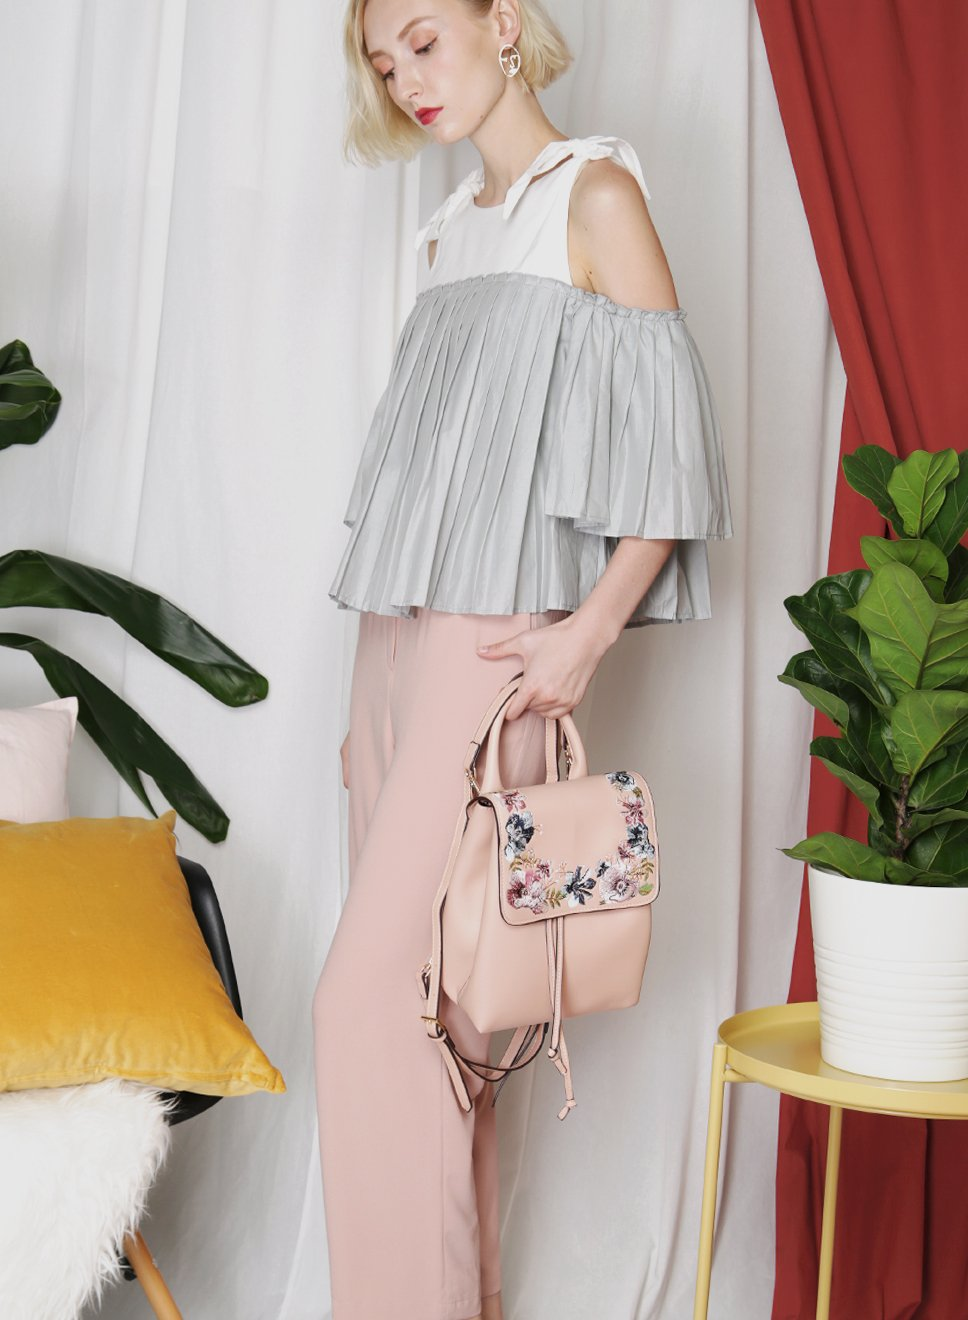 SPRUCE Belted High Waisted Pants (Blush) at $ 36.50 only sold at And Well Dressed Online Fashion Store Singapore